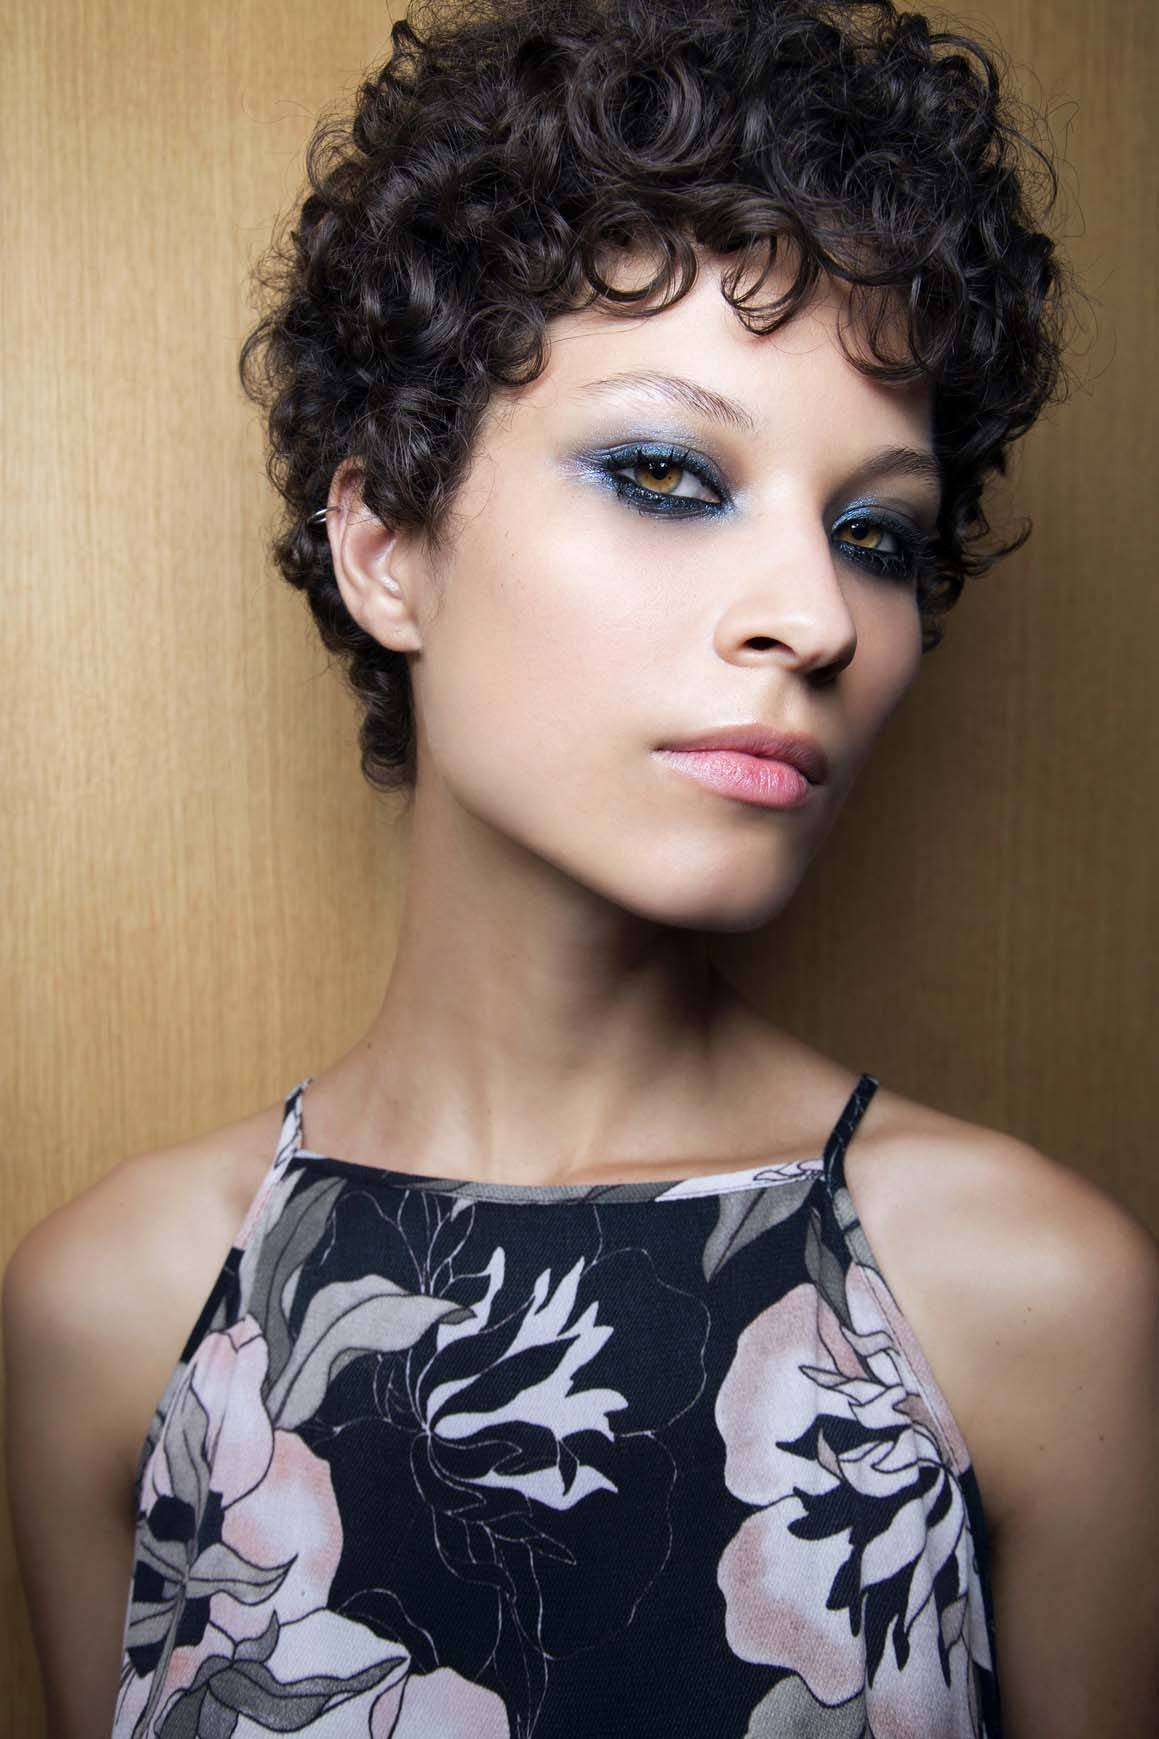 Superb The Best Hair Gel For Short Hair And How To Use It Short Hairstyles Gunalazisus